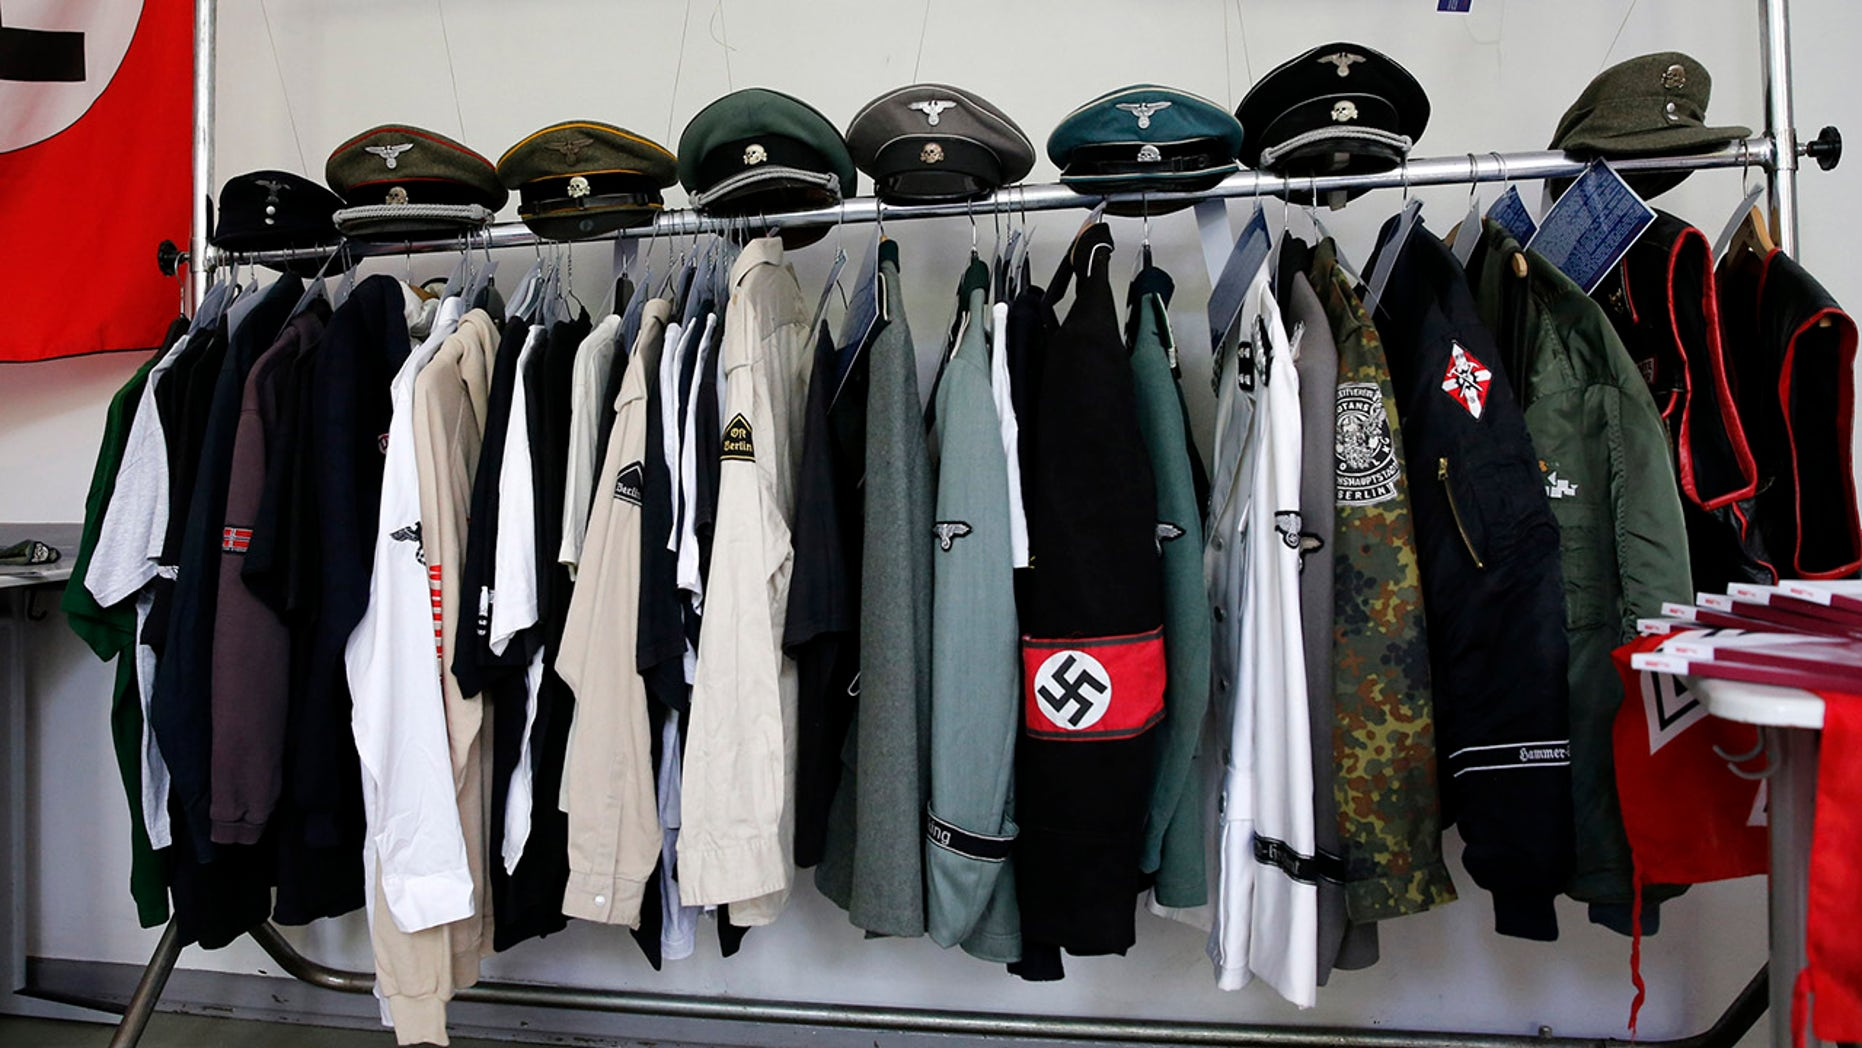 The British chef has apologized for dressing up in a Nazi uniform at a 2003 costume party.